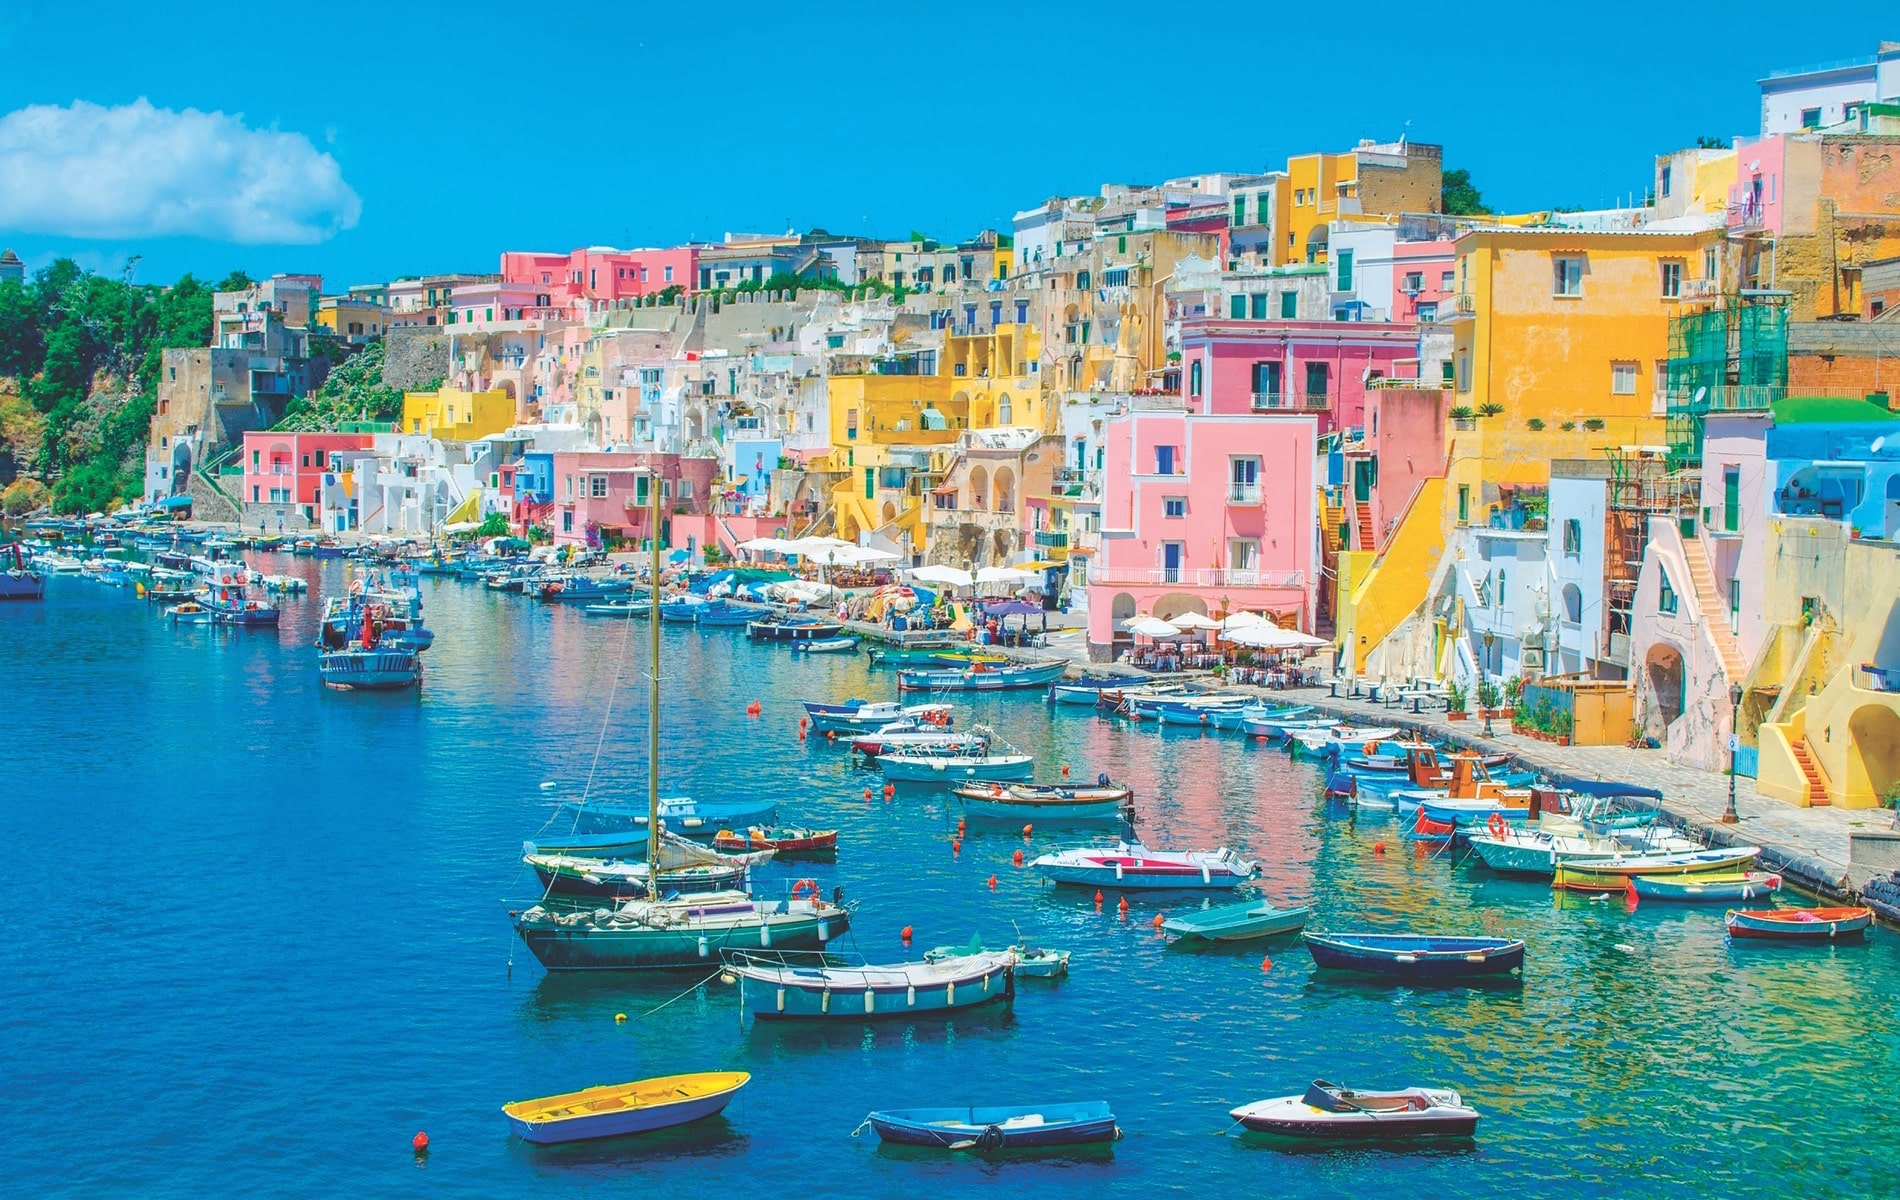 Just off the coast of Naples lies Procida, an island of just over one and half square miles. Its colorful historic district now boasts tourism as its main draw, though fishing, shipbuilding, and agriculture have played important roles throughout the centuries.